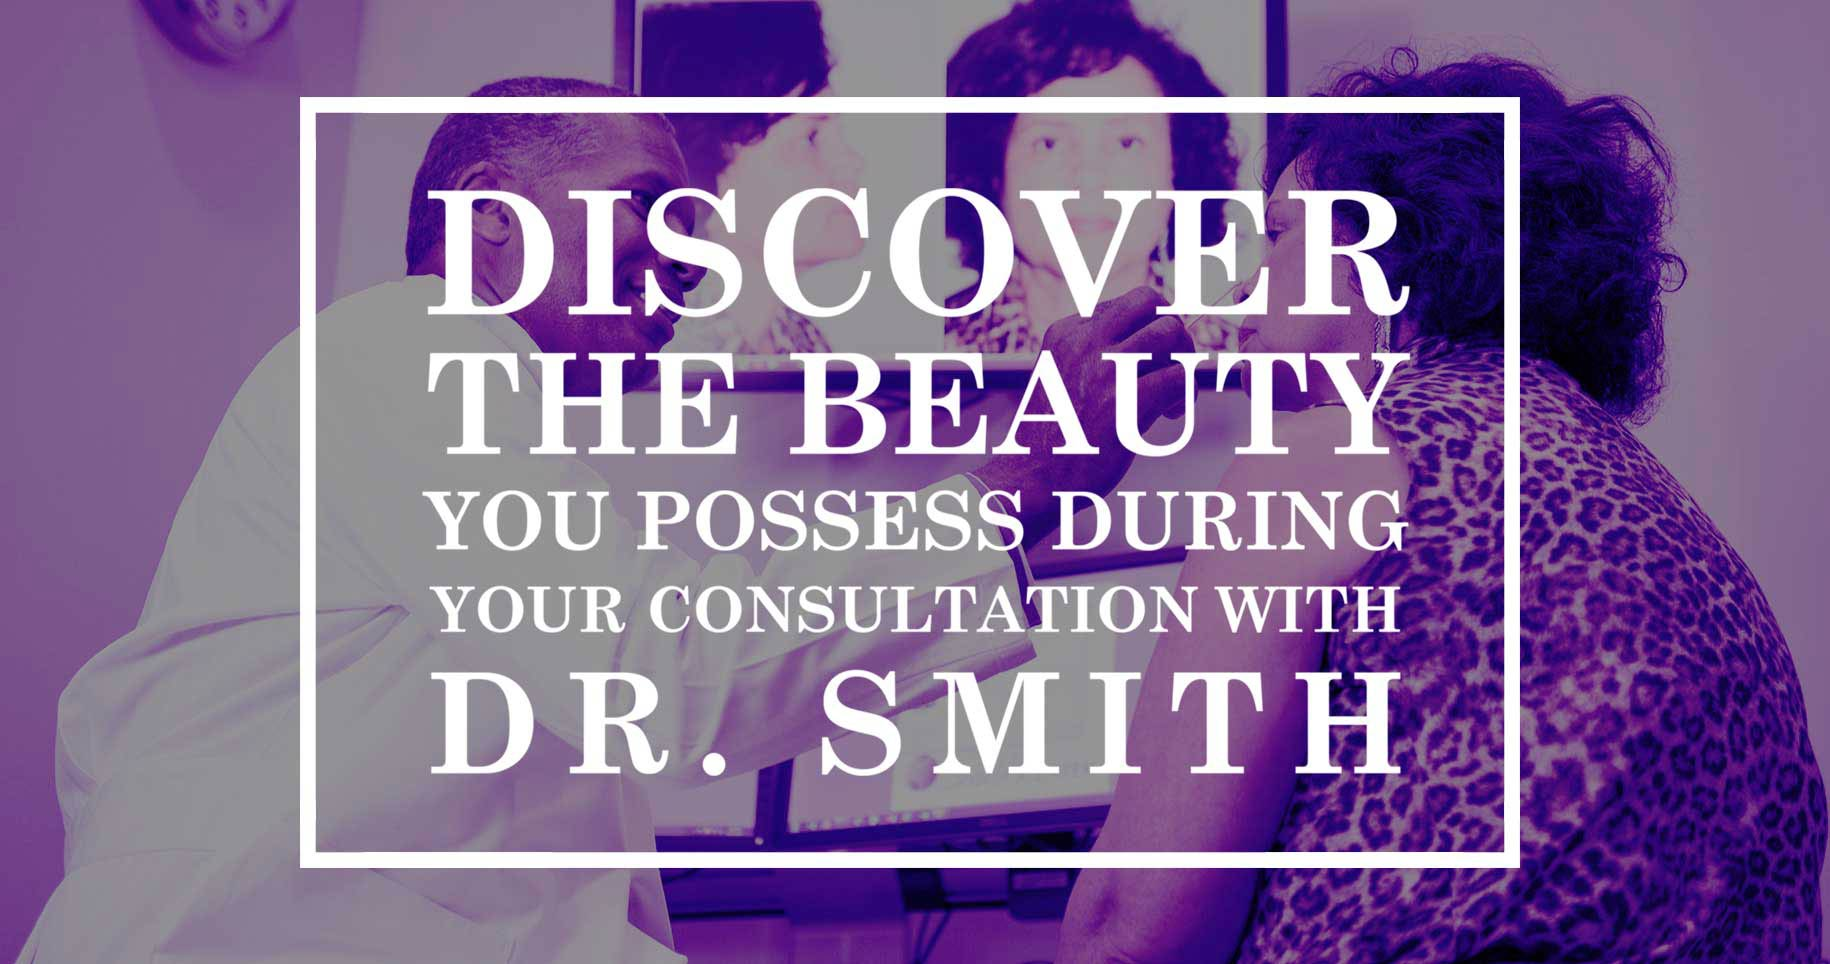 The facelift or the Smith Lift are great ways to remove facial wrinkles and sagging skin.